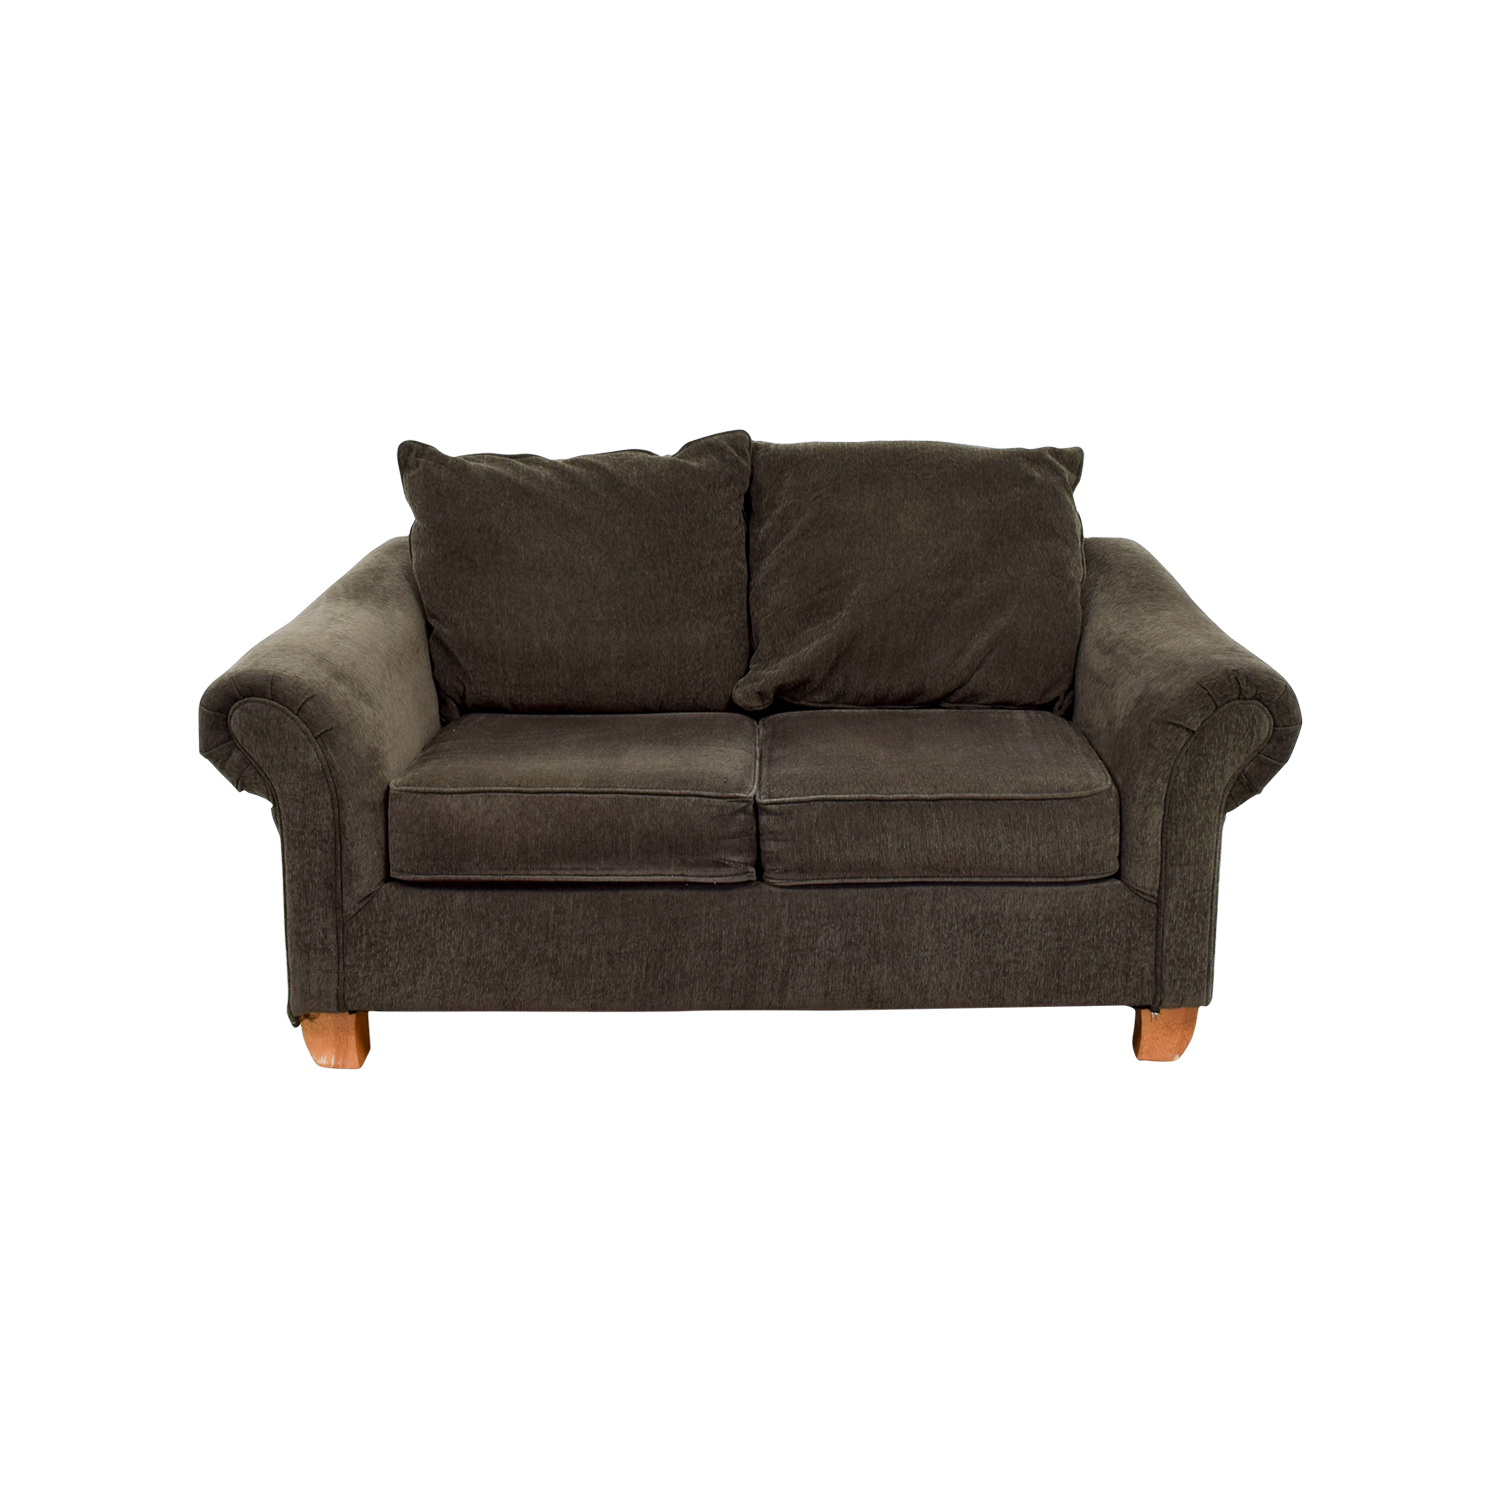 Star Furniture Star Furniture Brown Curved Arms Loveseat dimensions